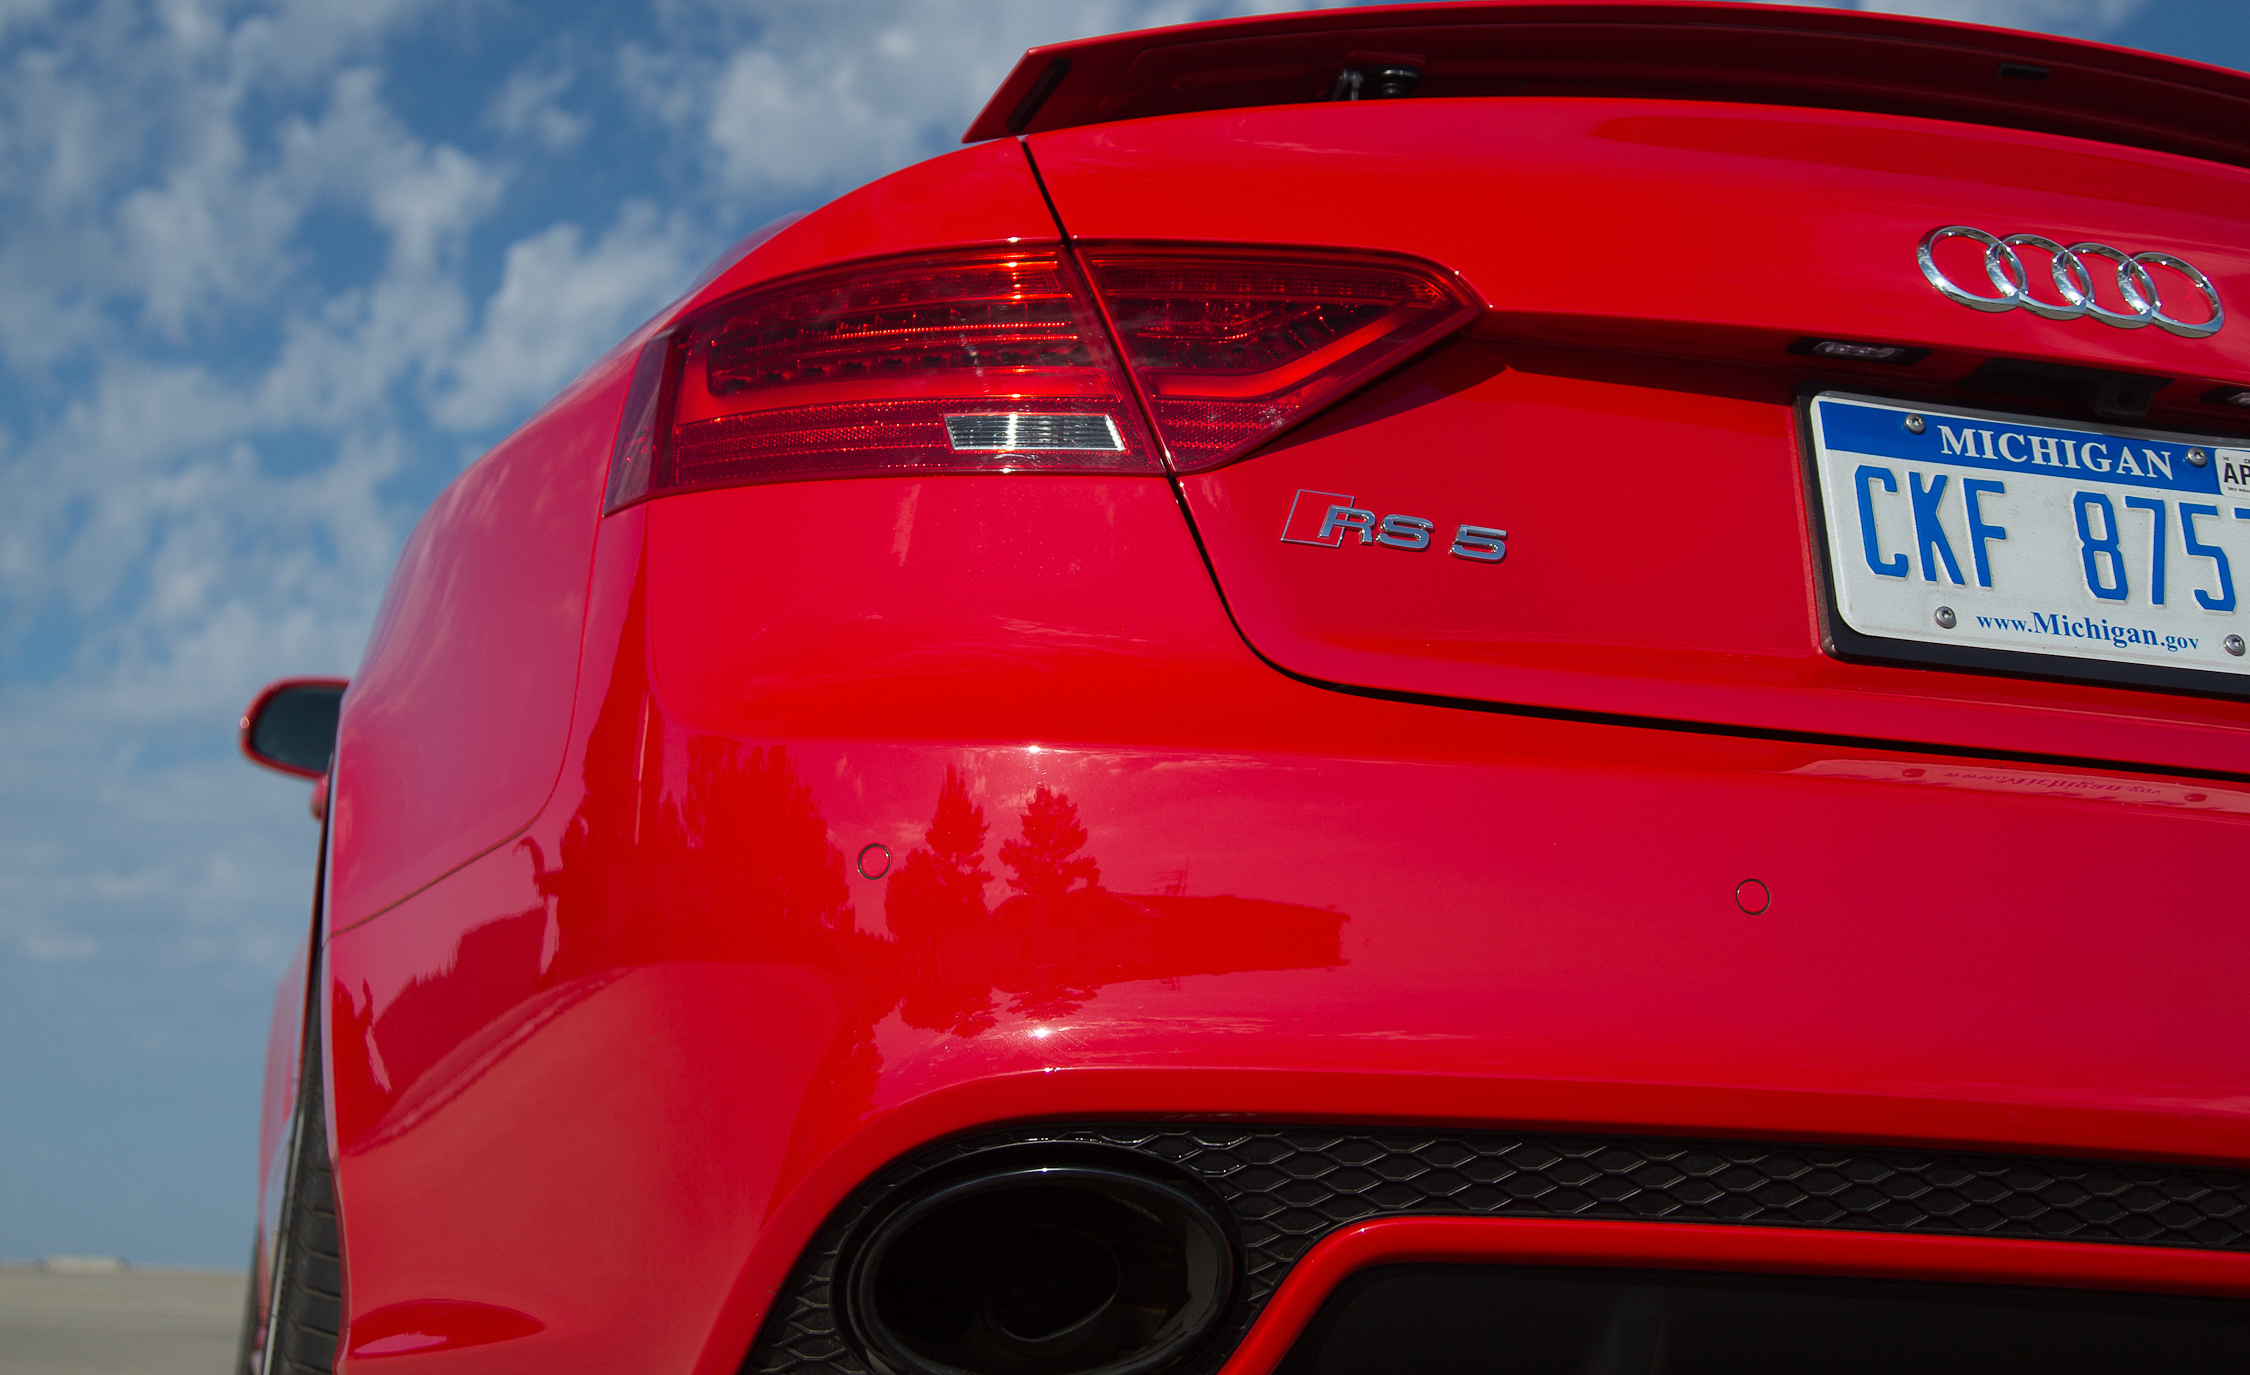 2013 Audi RS 5 Exterior View Rear Bumper (View 11 of 41)